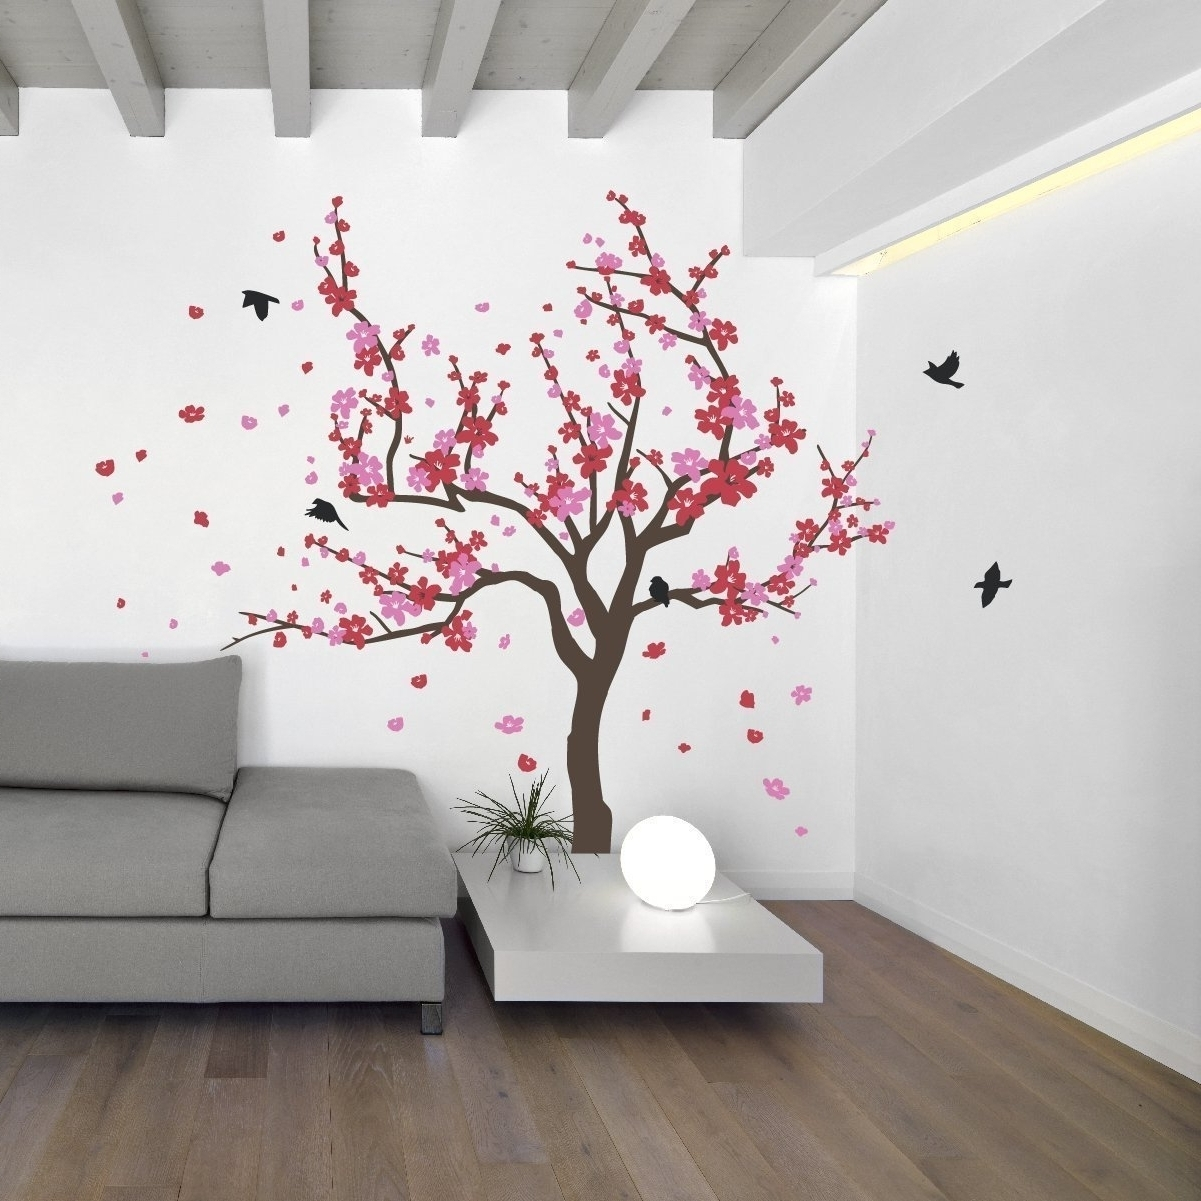 Cherry Blossom Wall Art – Amthuchanoi Throughout Best And Newest Cherry Blossom Wall Art (Gallery 5 of 20)